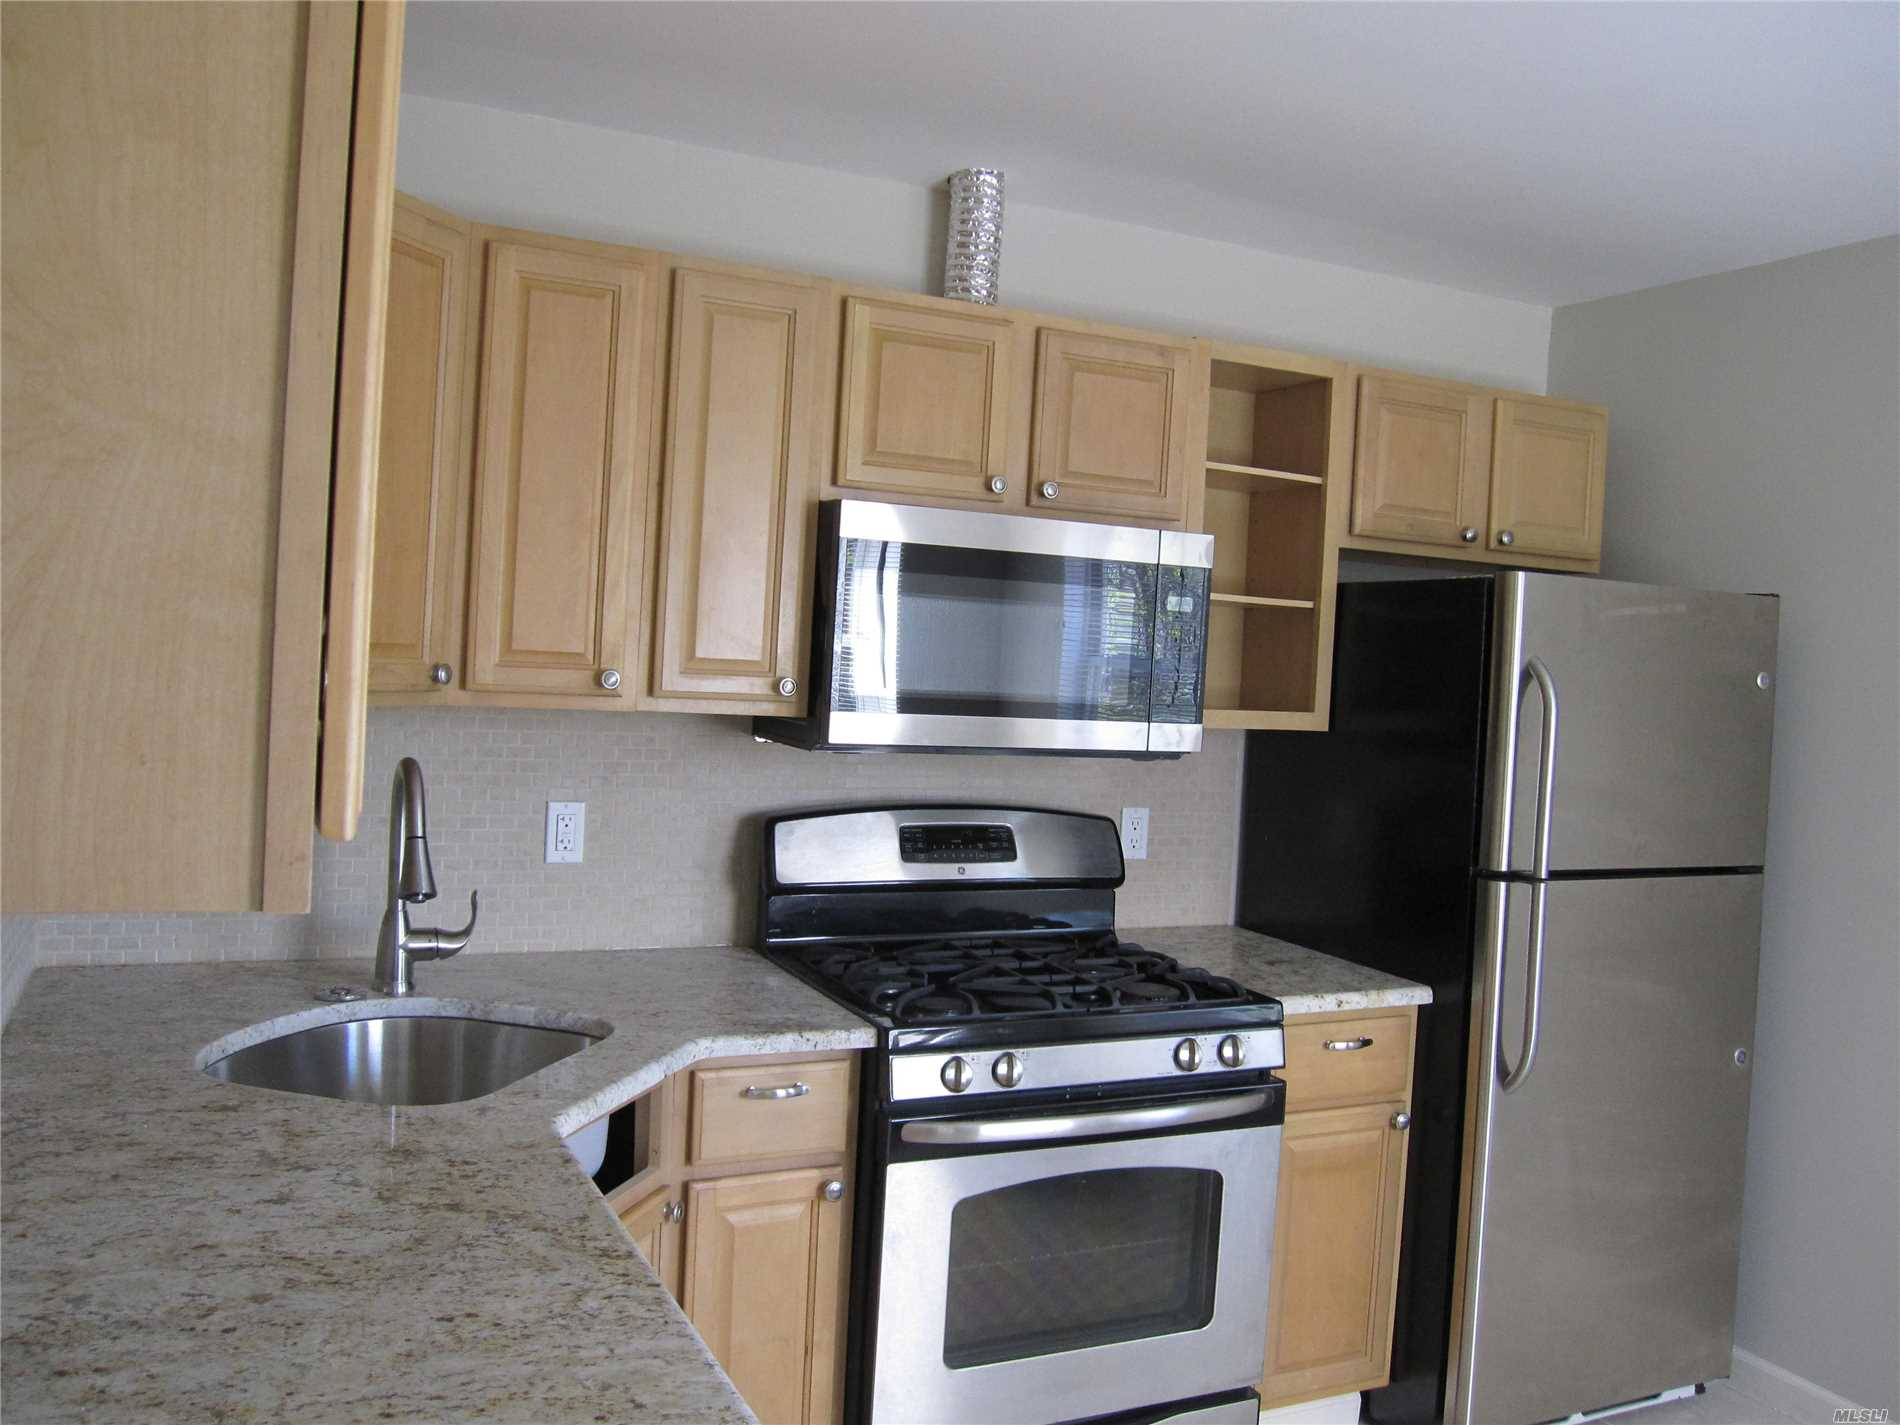 Lovely updated 1 bedroom apartment with stainless appliances and granite counters, New full bathroom with tub. Sunny Second Floor location. 20 minutes to SUNY Stony Brook on cul de sac. Tenant must apply online thru NTN (National Tenant Network)and pay 35.00 application fee... http://secure.ntnonline.com/applicant